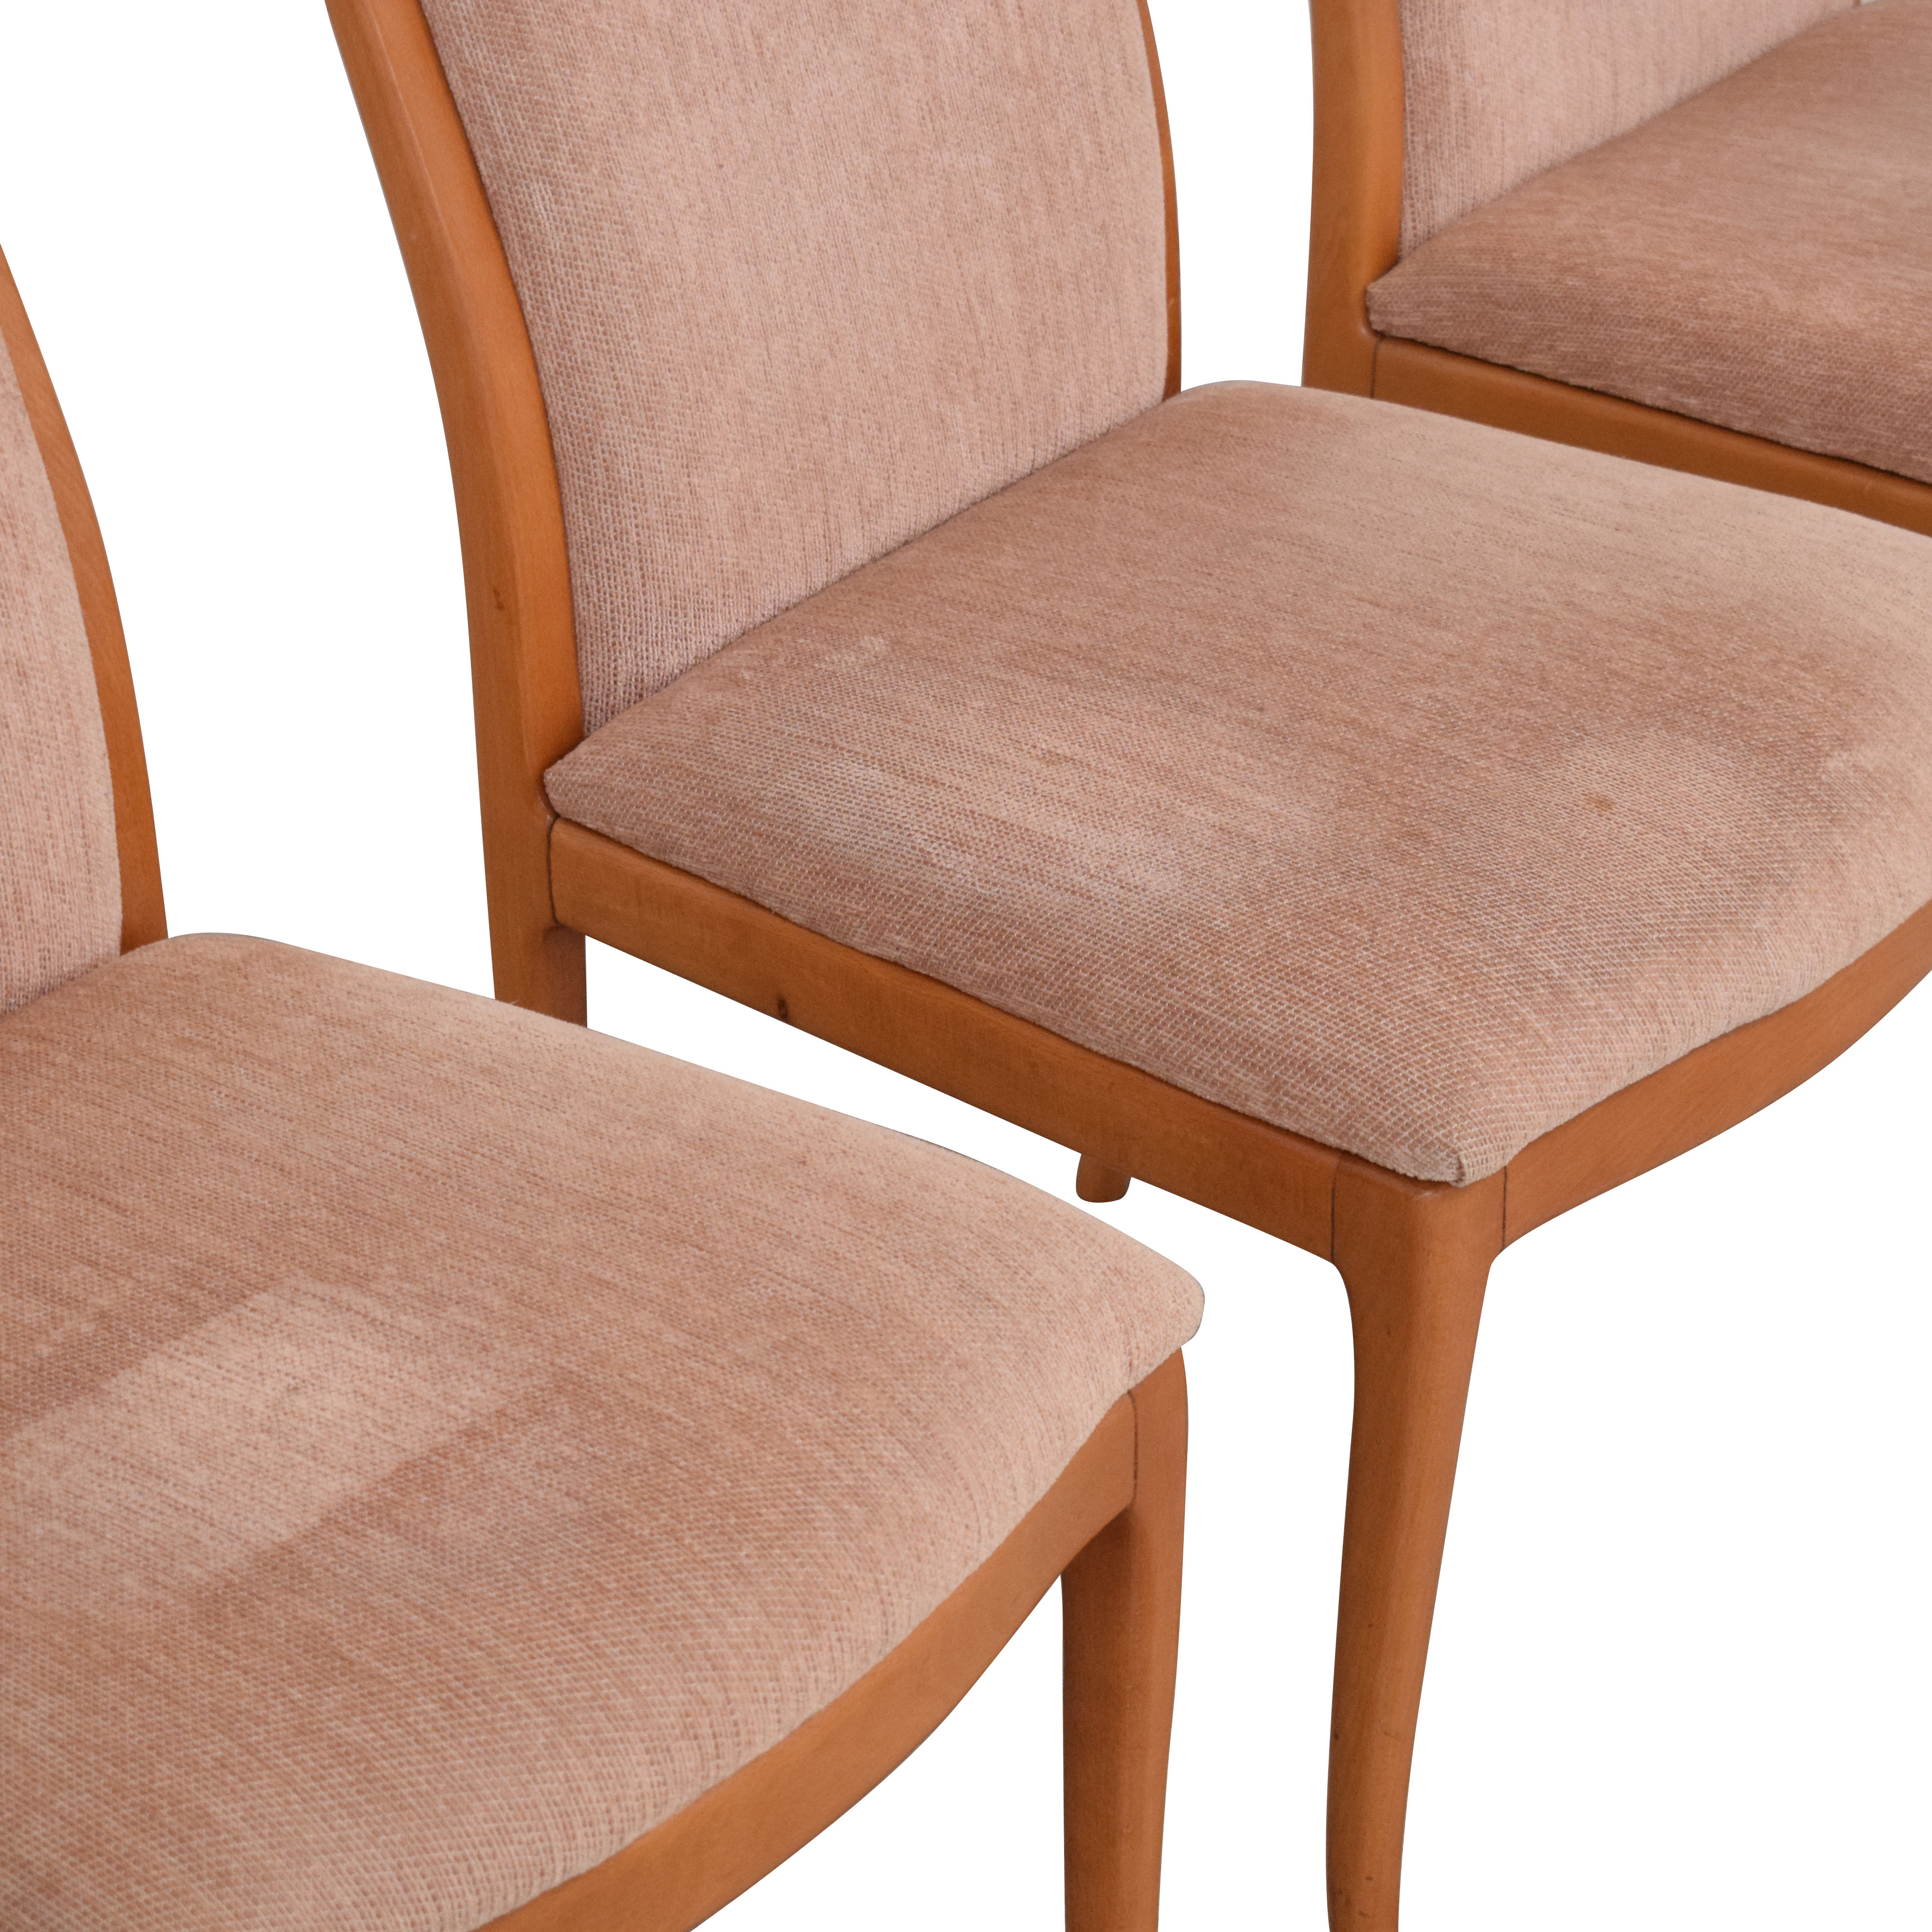 Directional Furniture Directional Furniture Dining Chairs dimensions